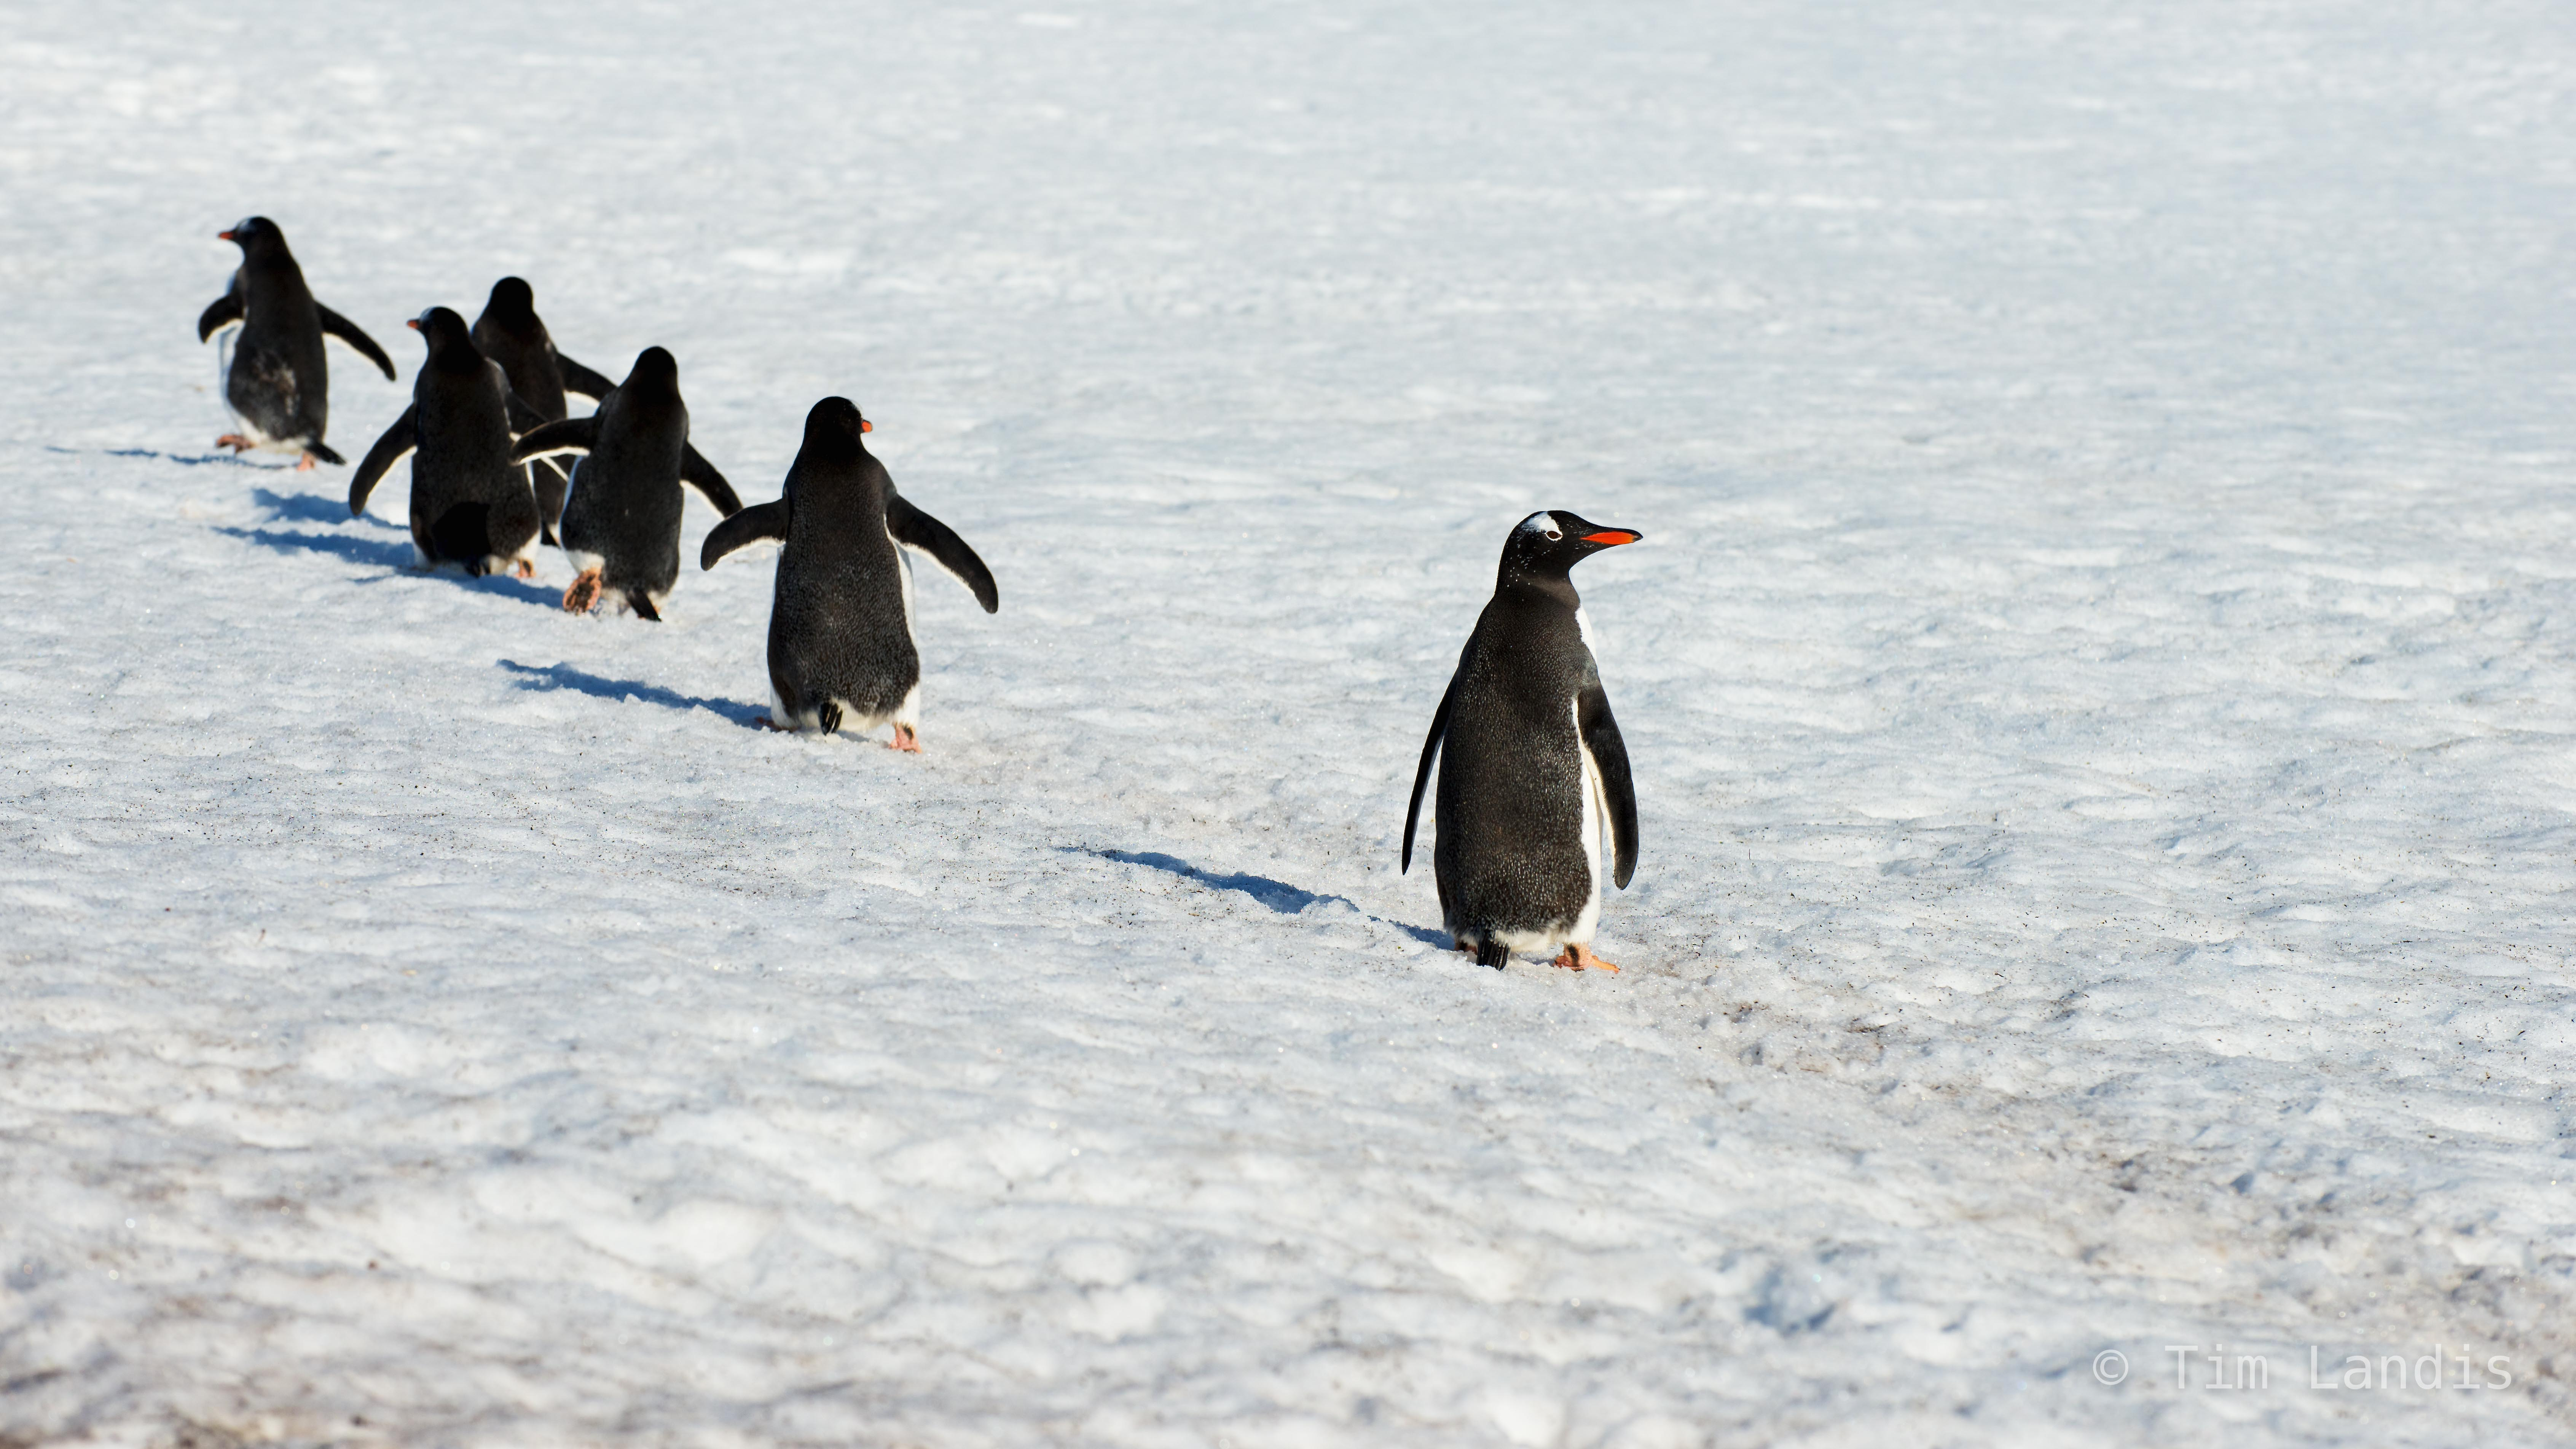 gentoo penguins marching in a line, last one looking over his shoulder, s. georgia island, photo